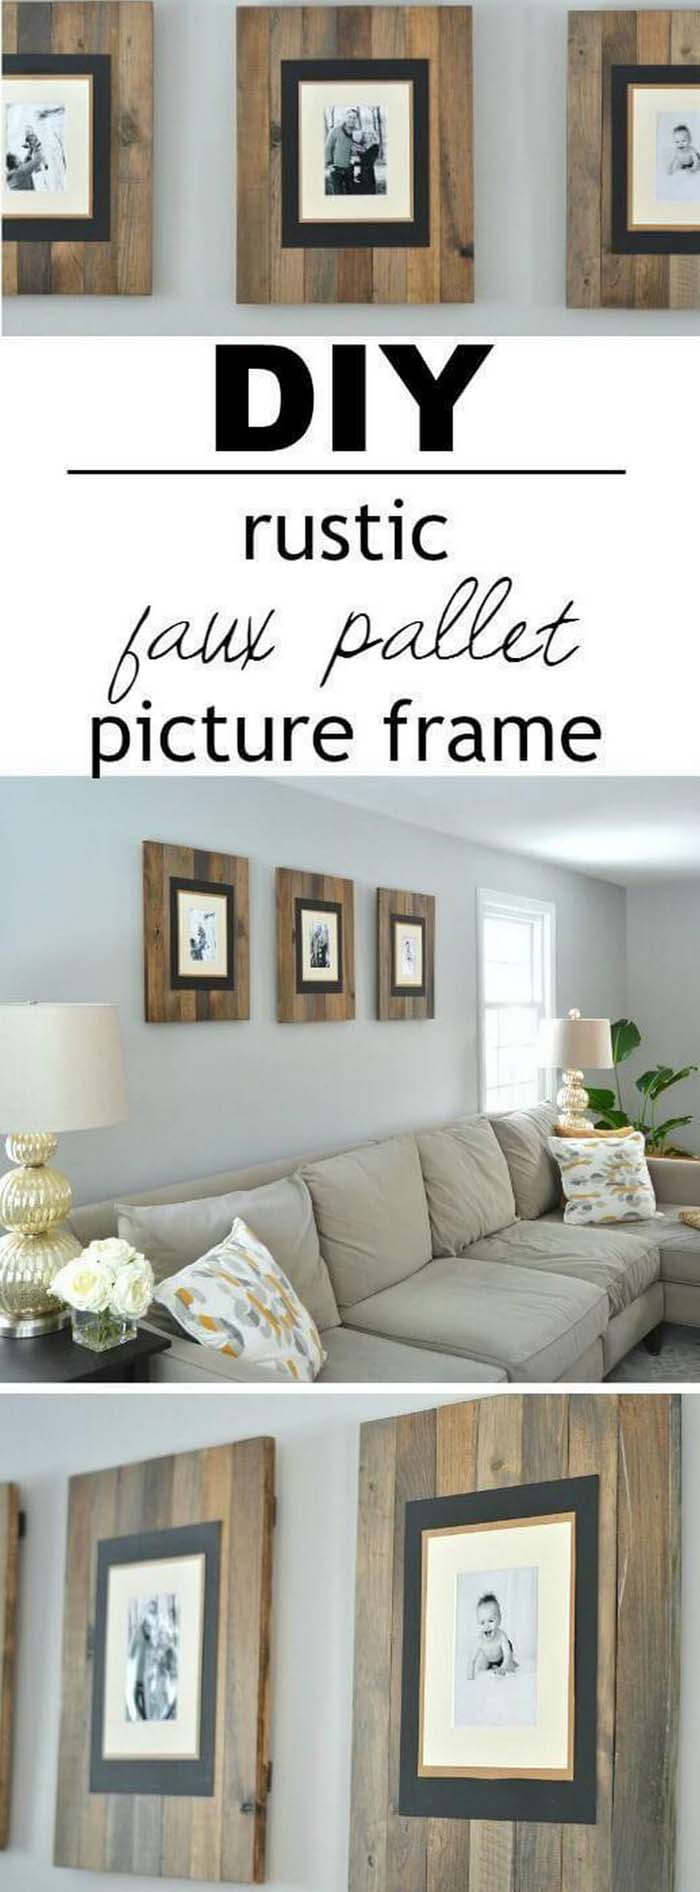 Make Your Own Pallet Style Frames #rustic #livingroom #walldecor #decorhomeideas